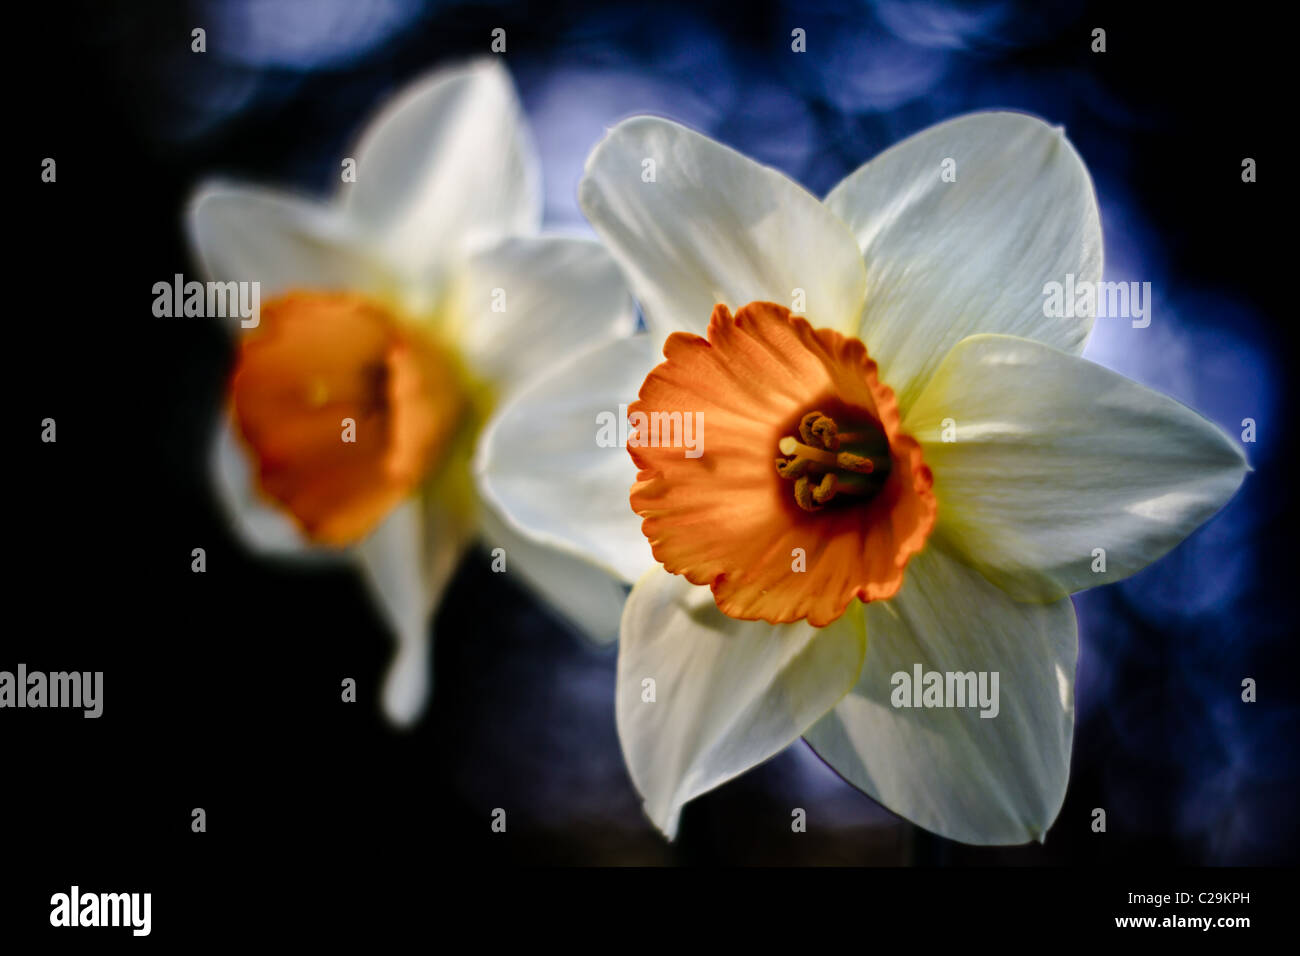 Stunning daffodils (NARCISSUS GERANIUM)  in spring, UK - Stock Image